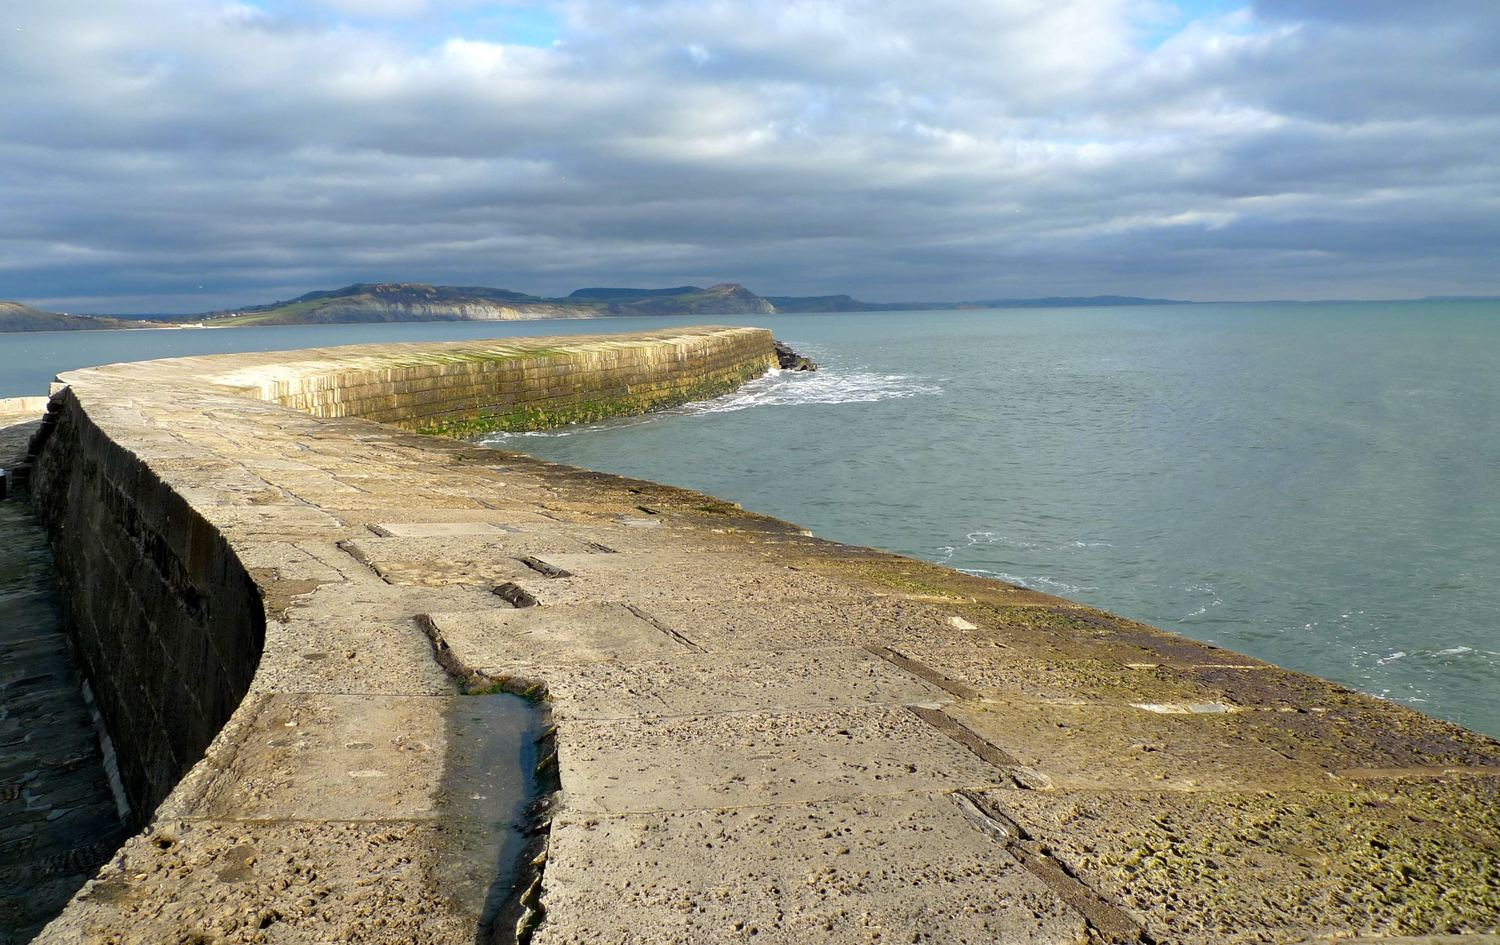 Sun on Saturday: The Cobb at Lyme Regis